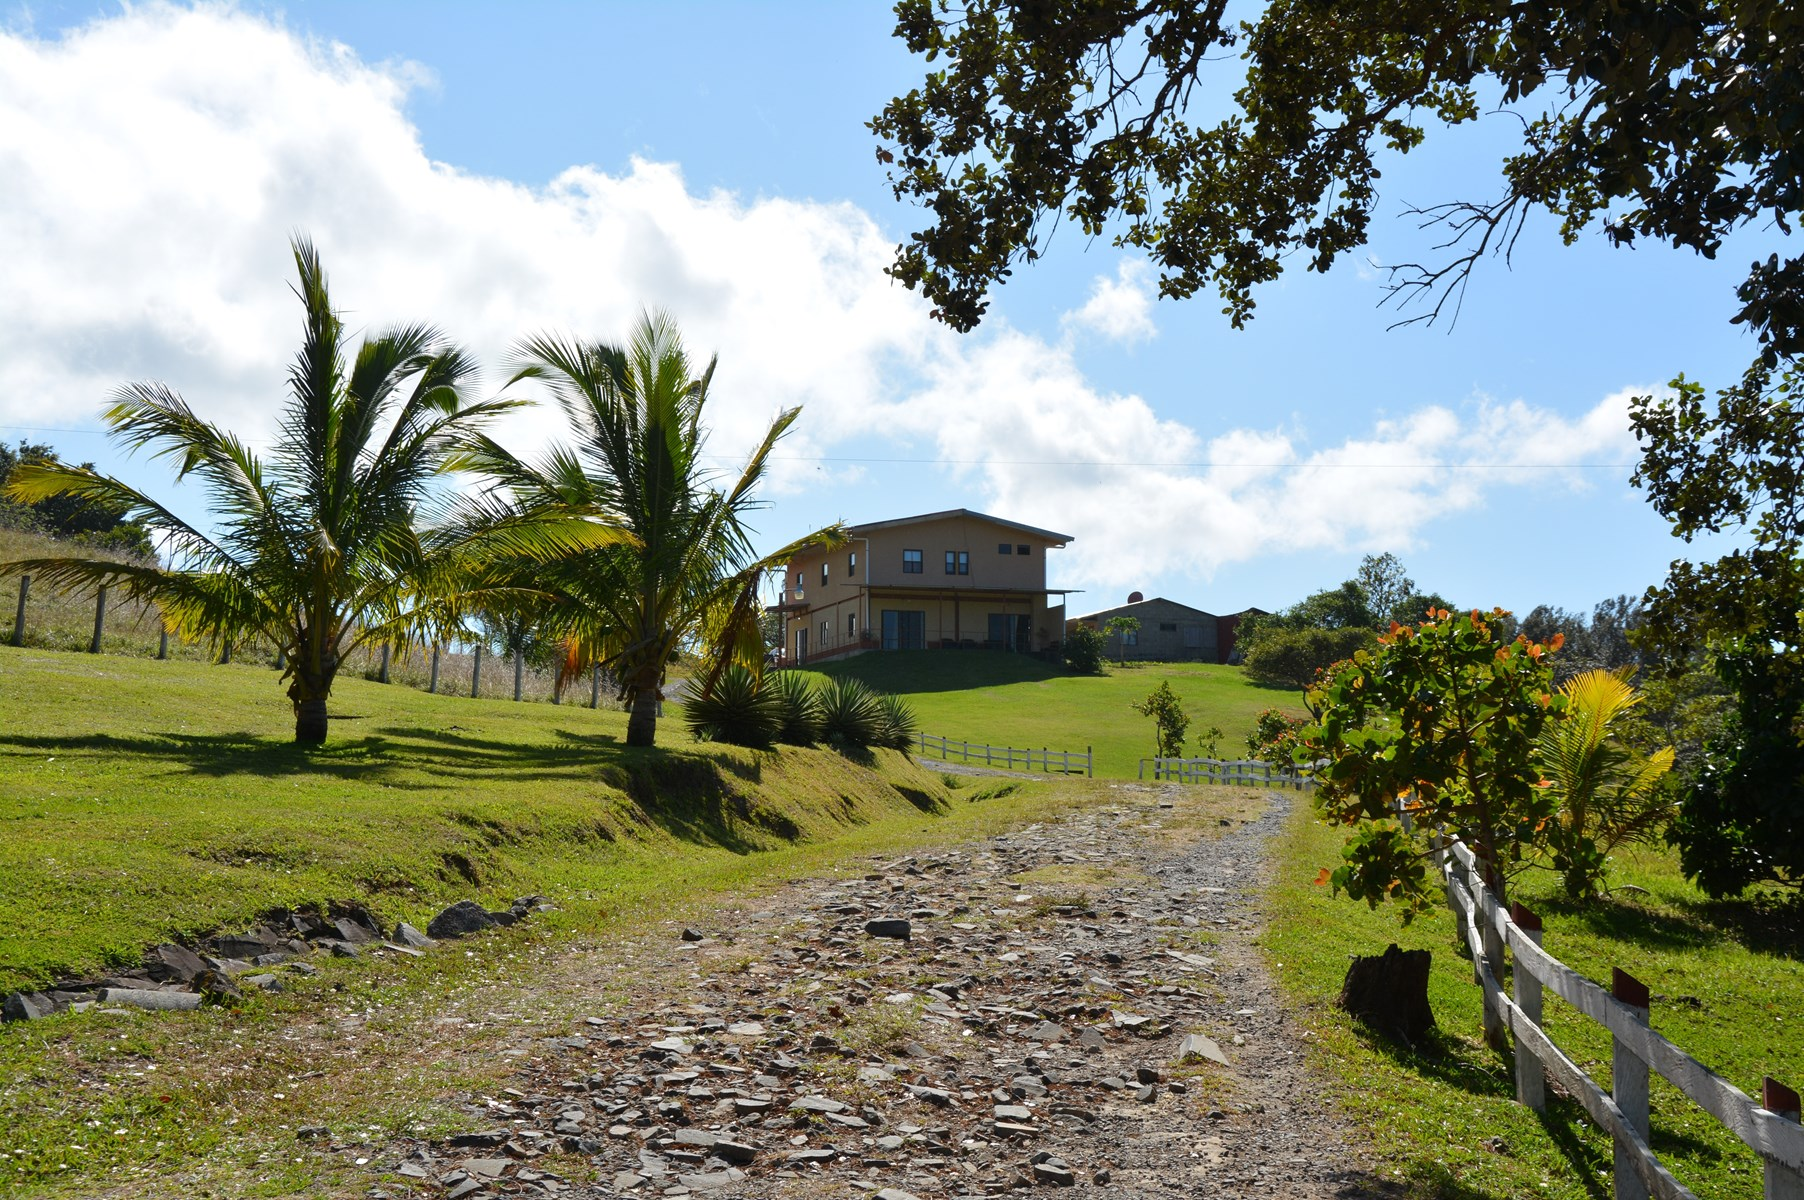 Ranch, Lodge and Adventure Park for sale in Costa Rica